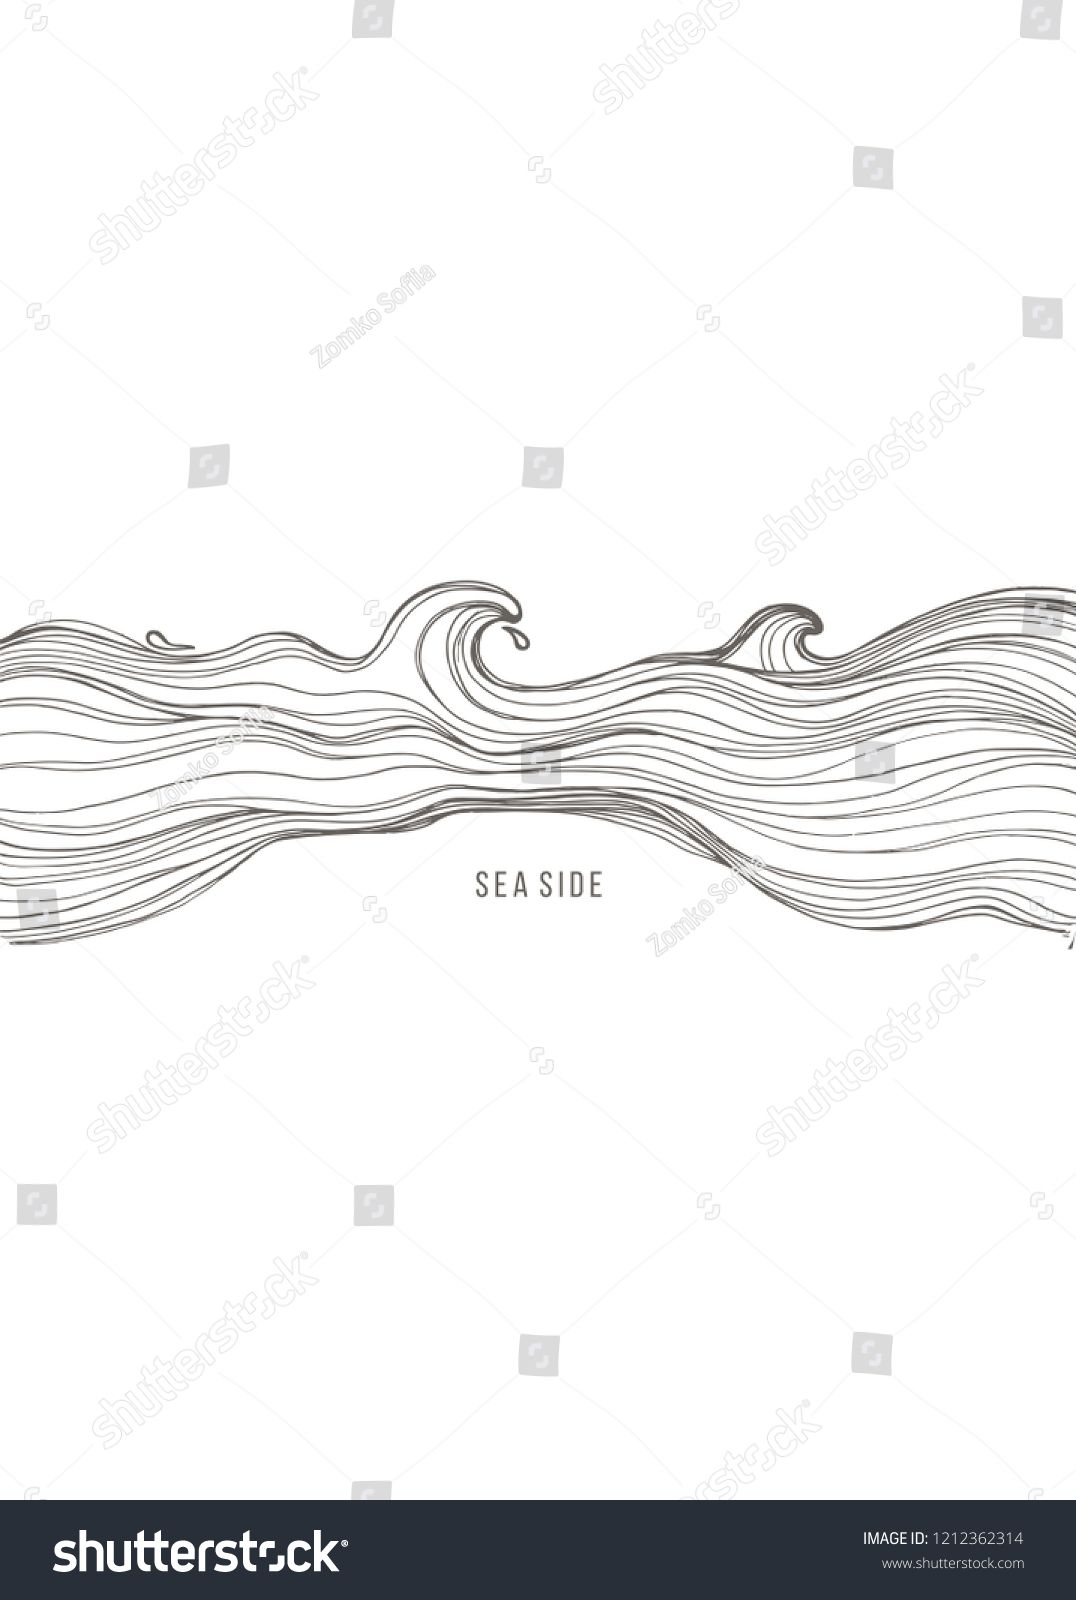 Sketch Waves Isolated On White Background Vector Album